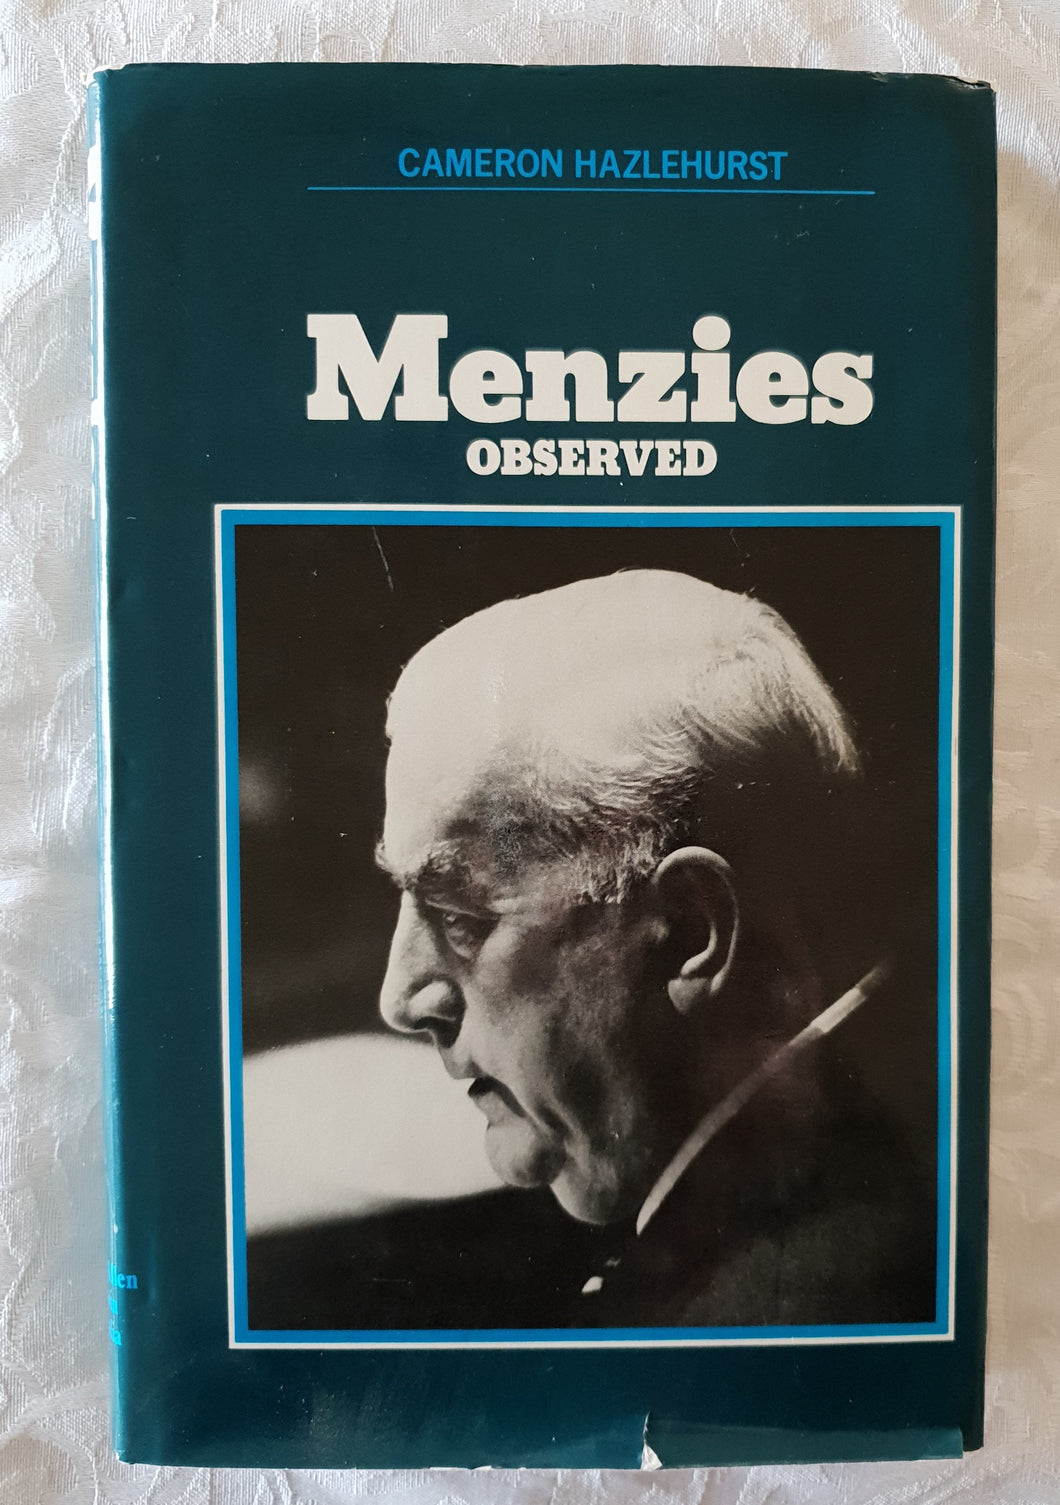 Menzies Observed by Cameron Hazlehurst